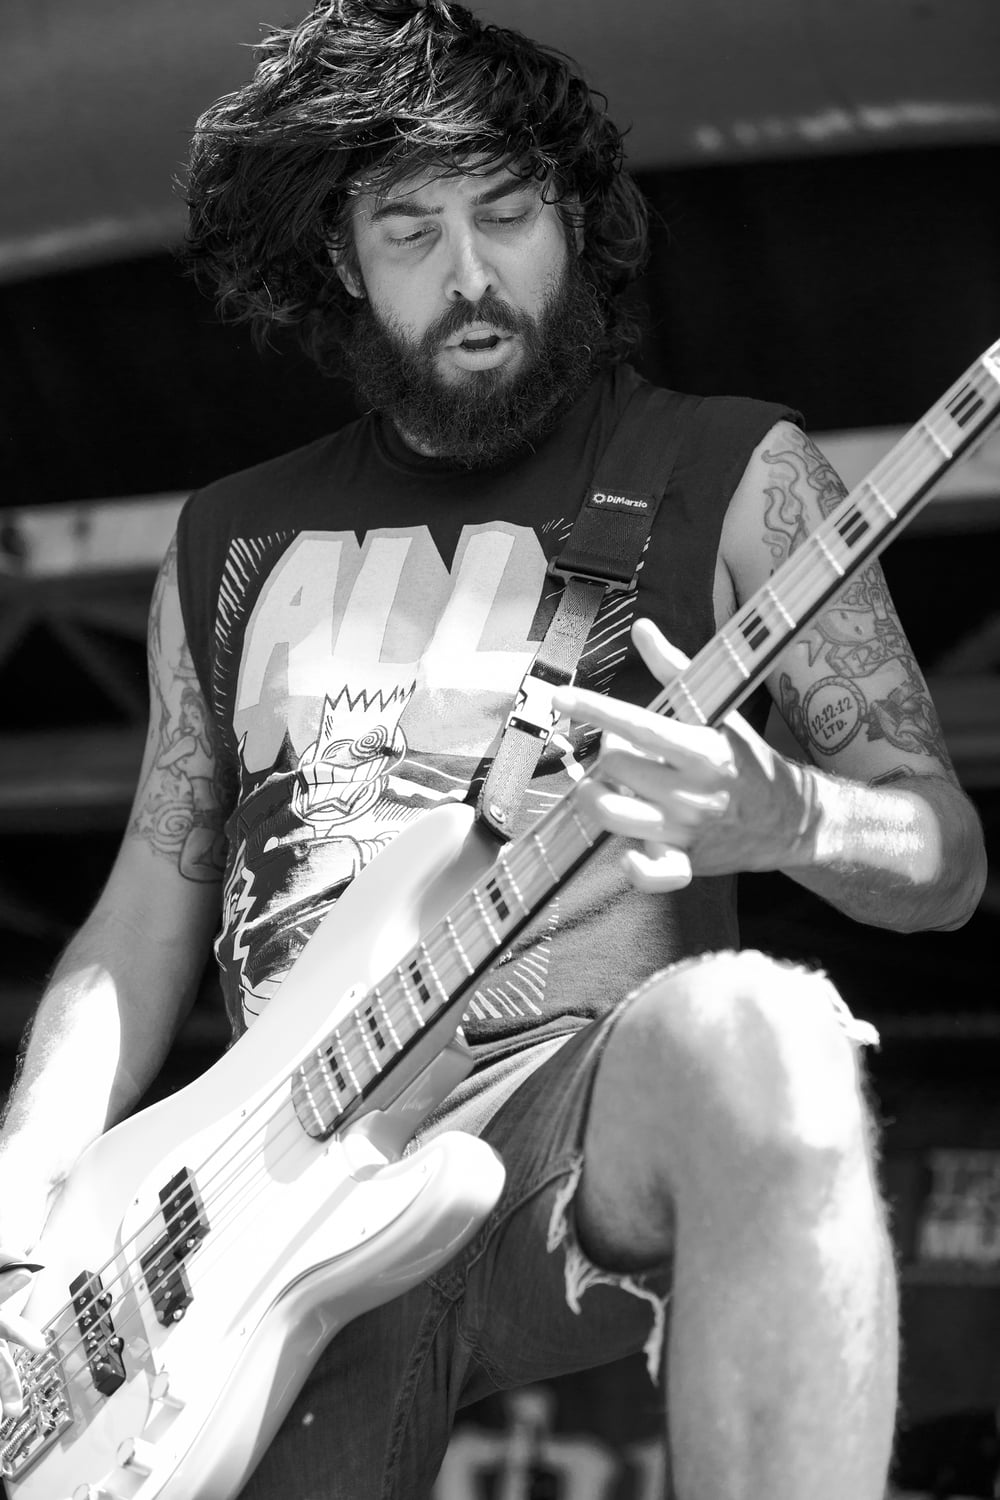 D_Warped_ETID_024.jpg